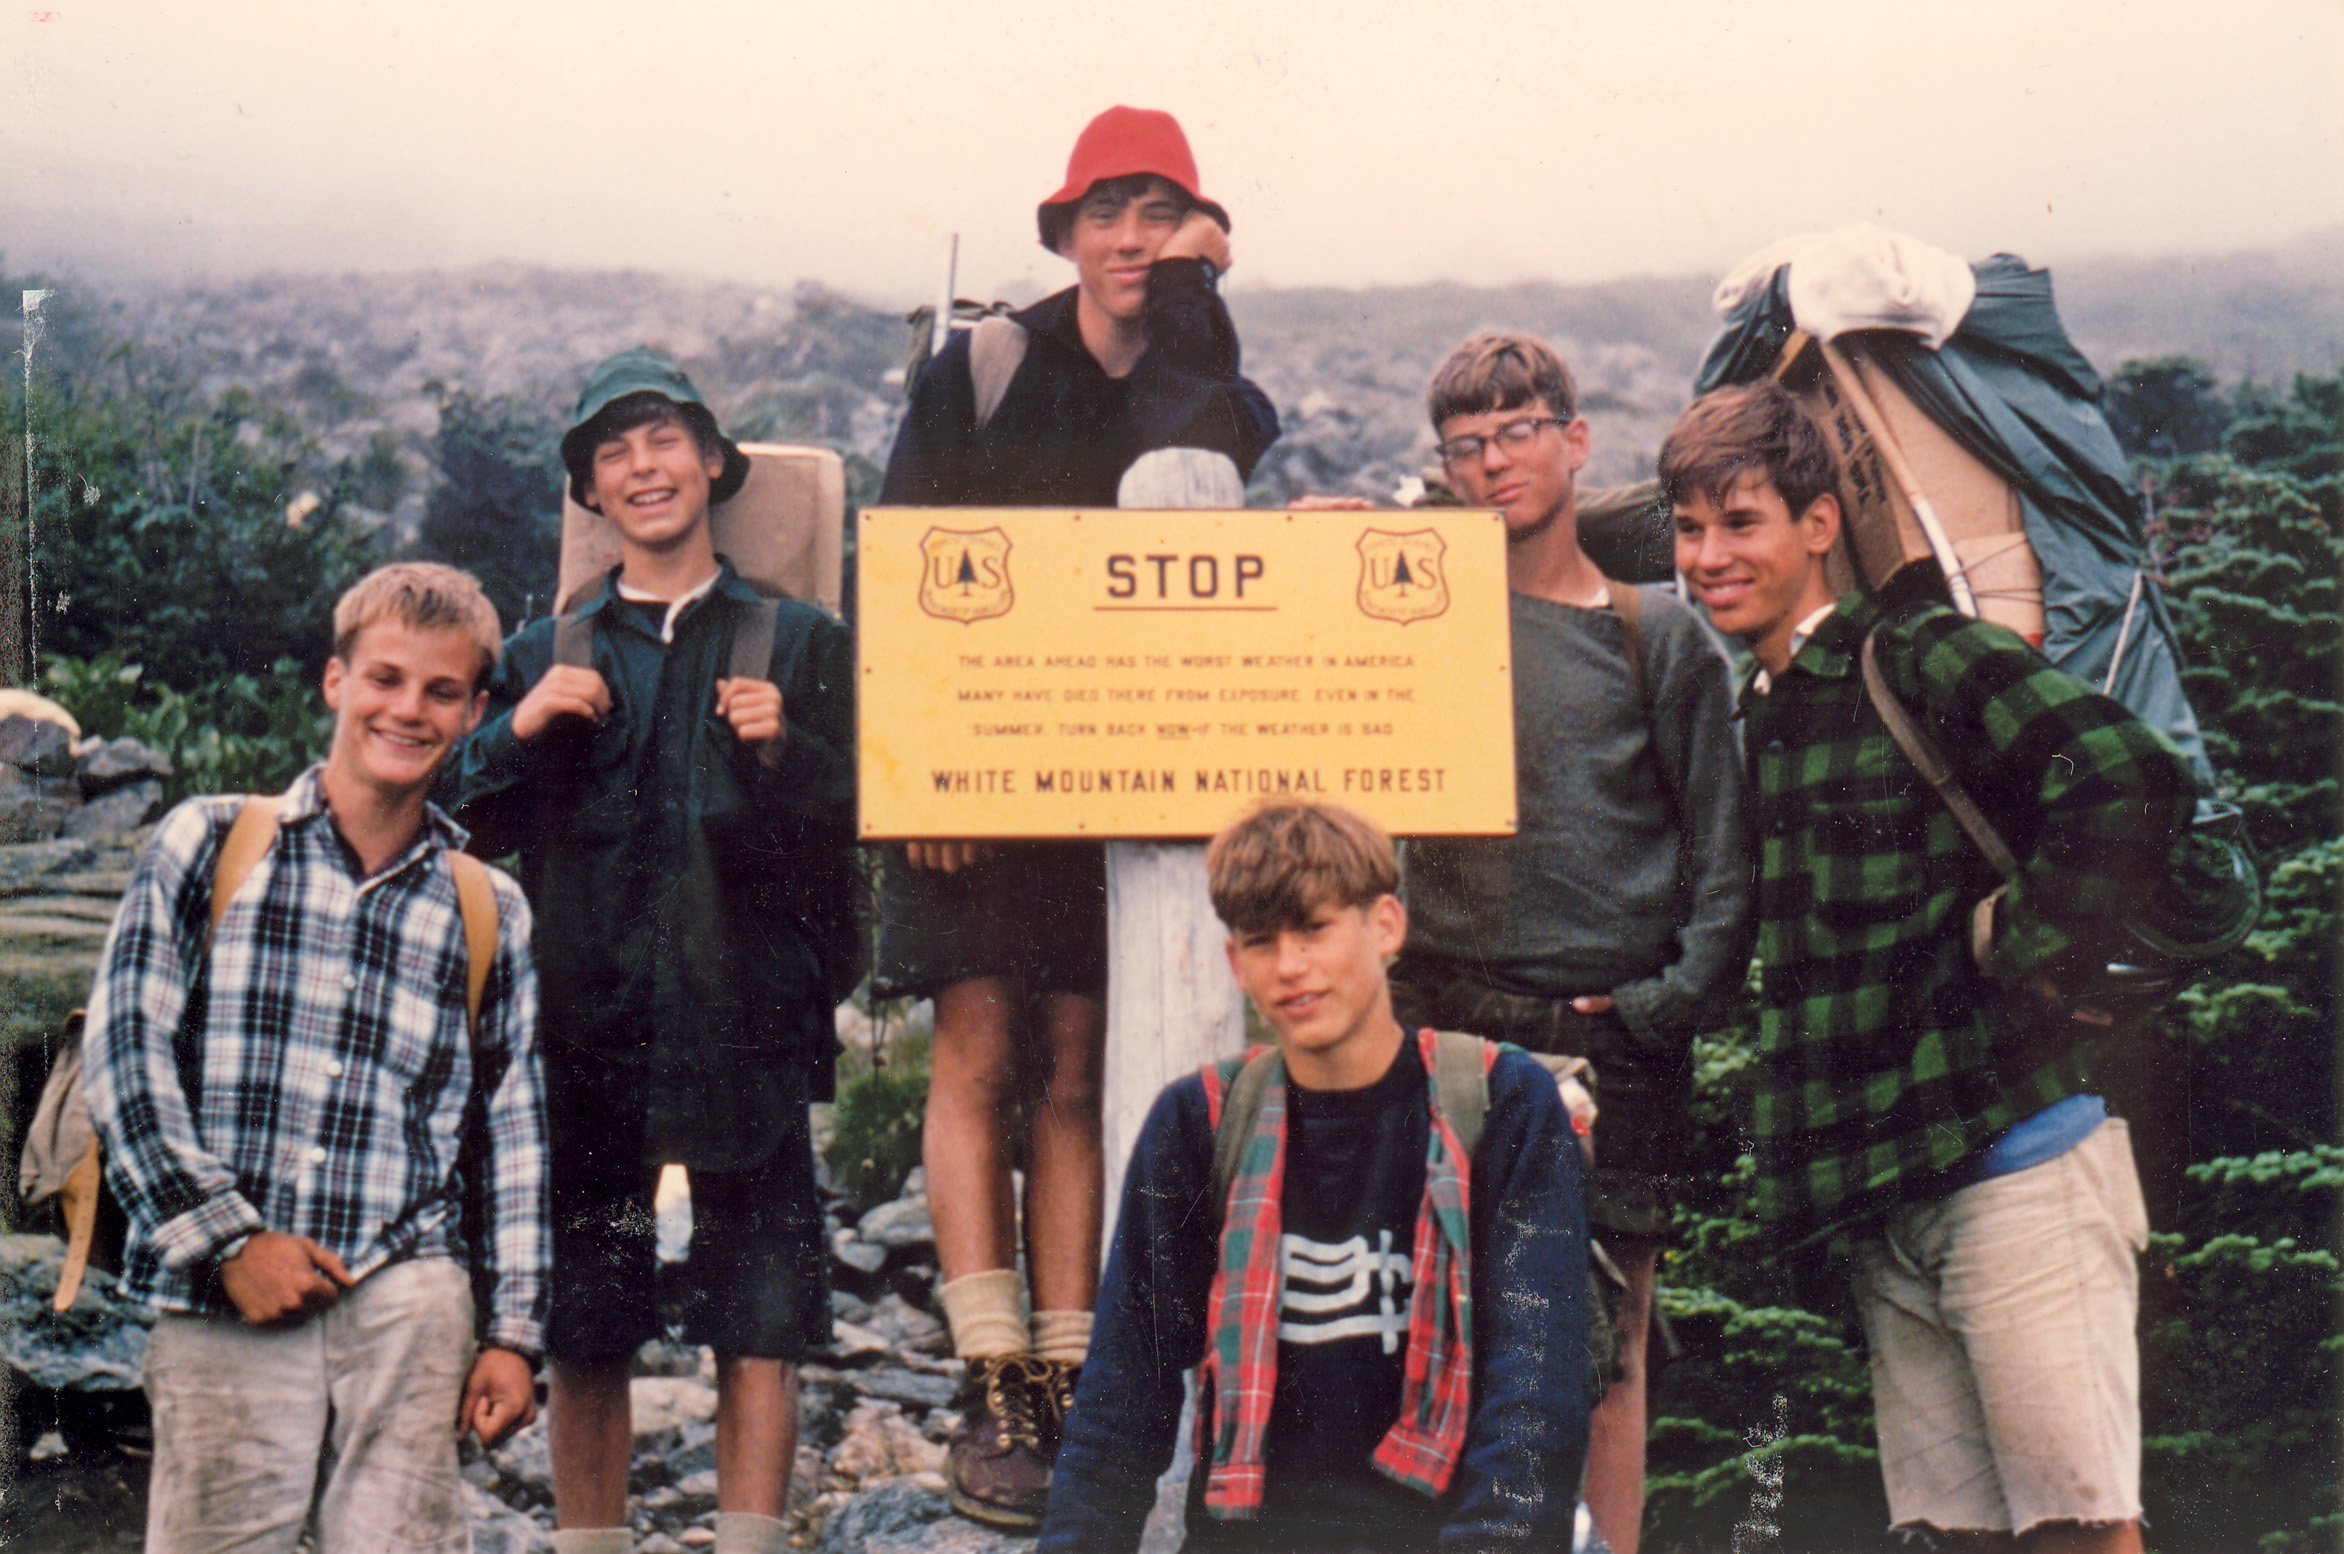 1965.  From left to right: Howard Ferguson, Coly Hoyt, John Timkin, John Goodhue, Jeff Kilbreth, and Dave Carmen on their way up Mt. Washington